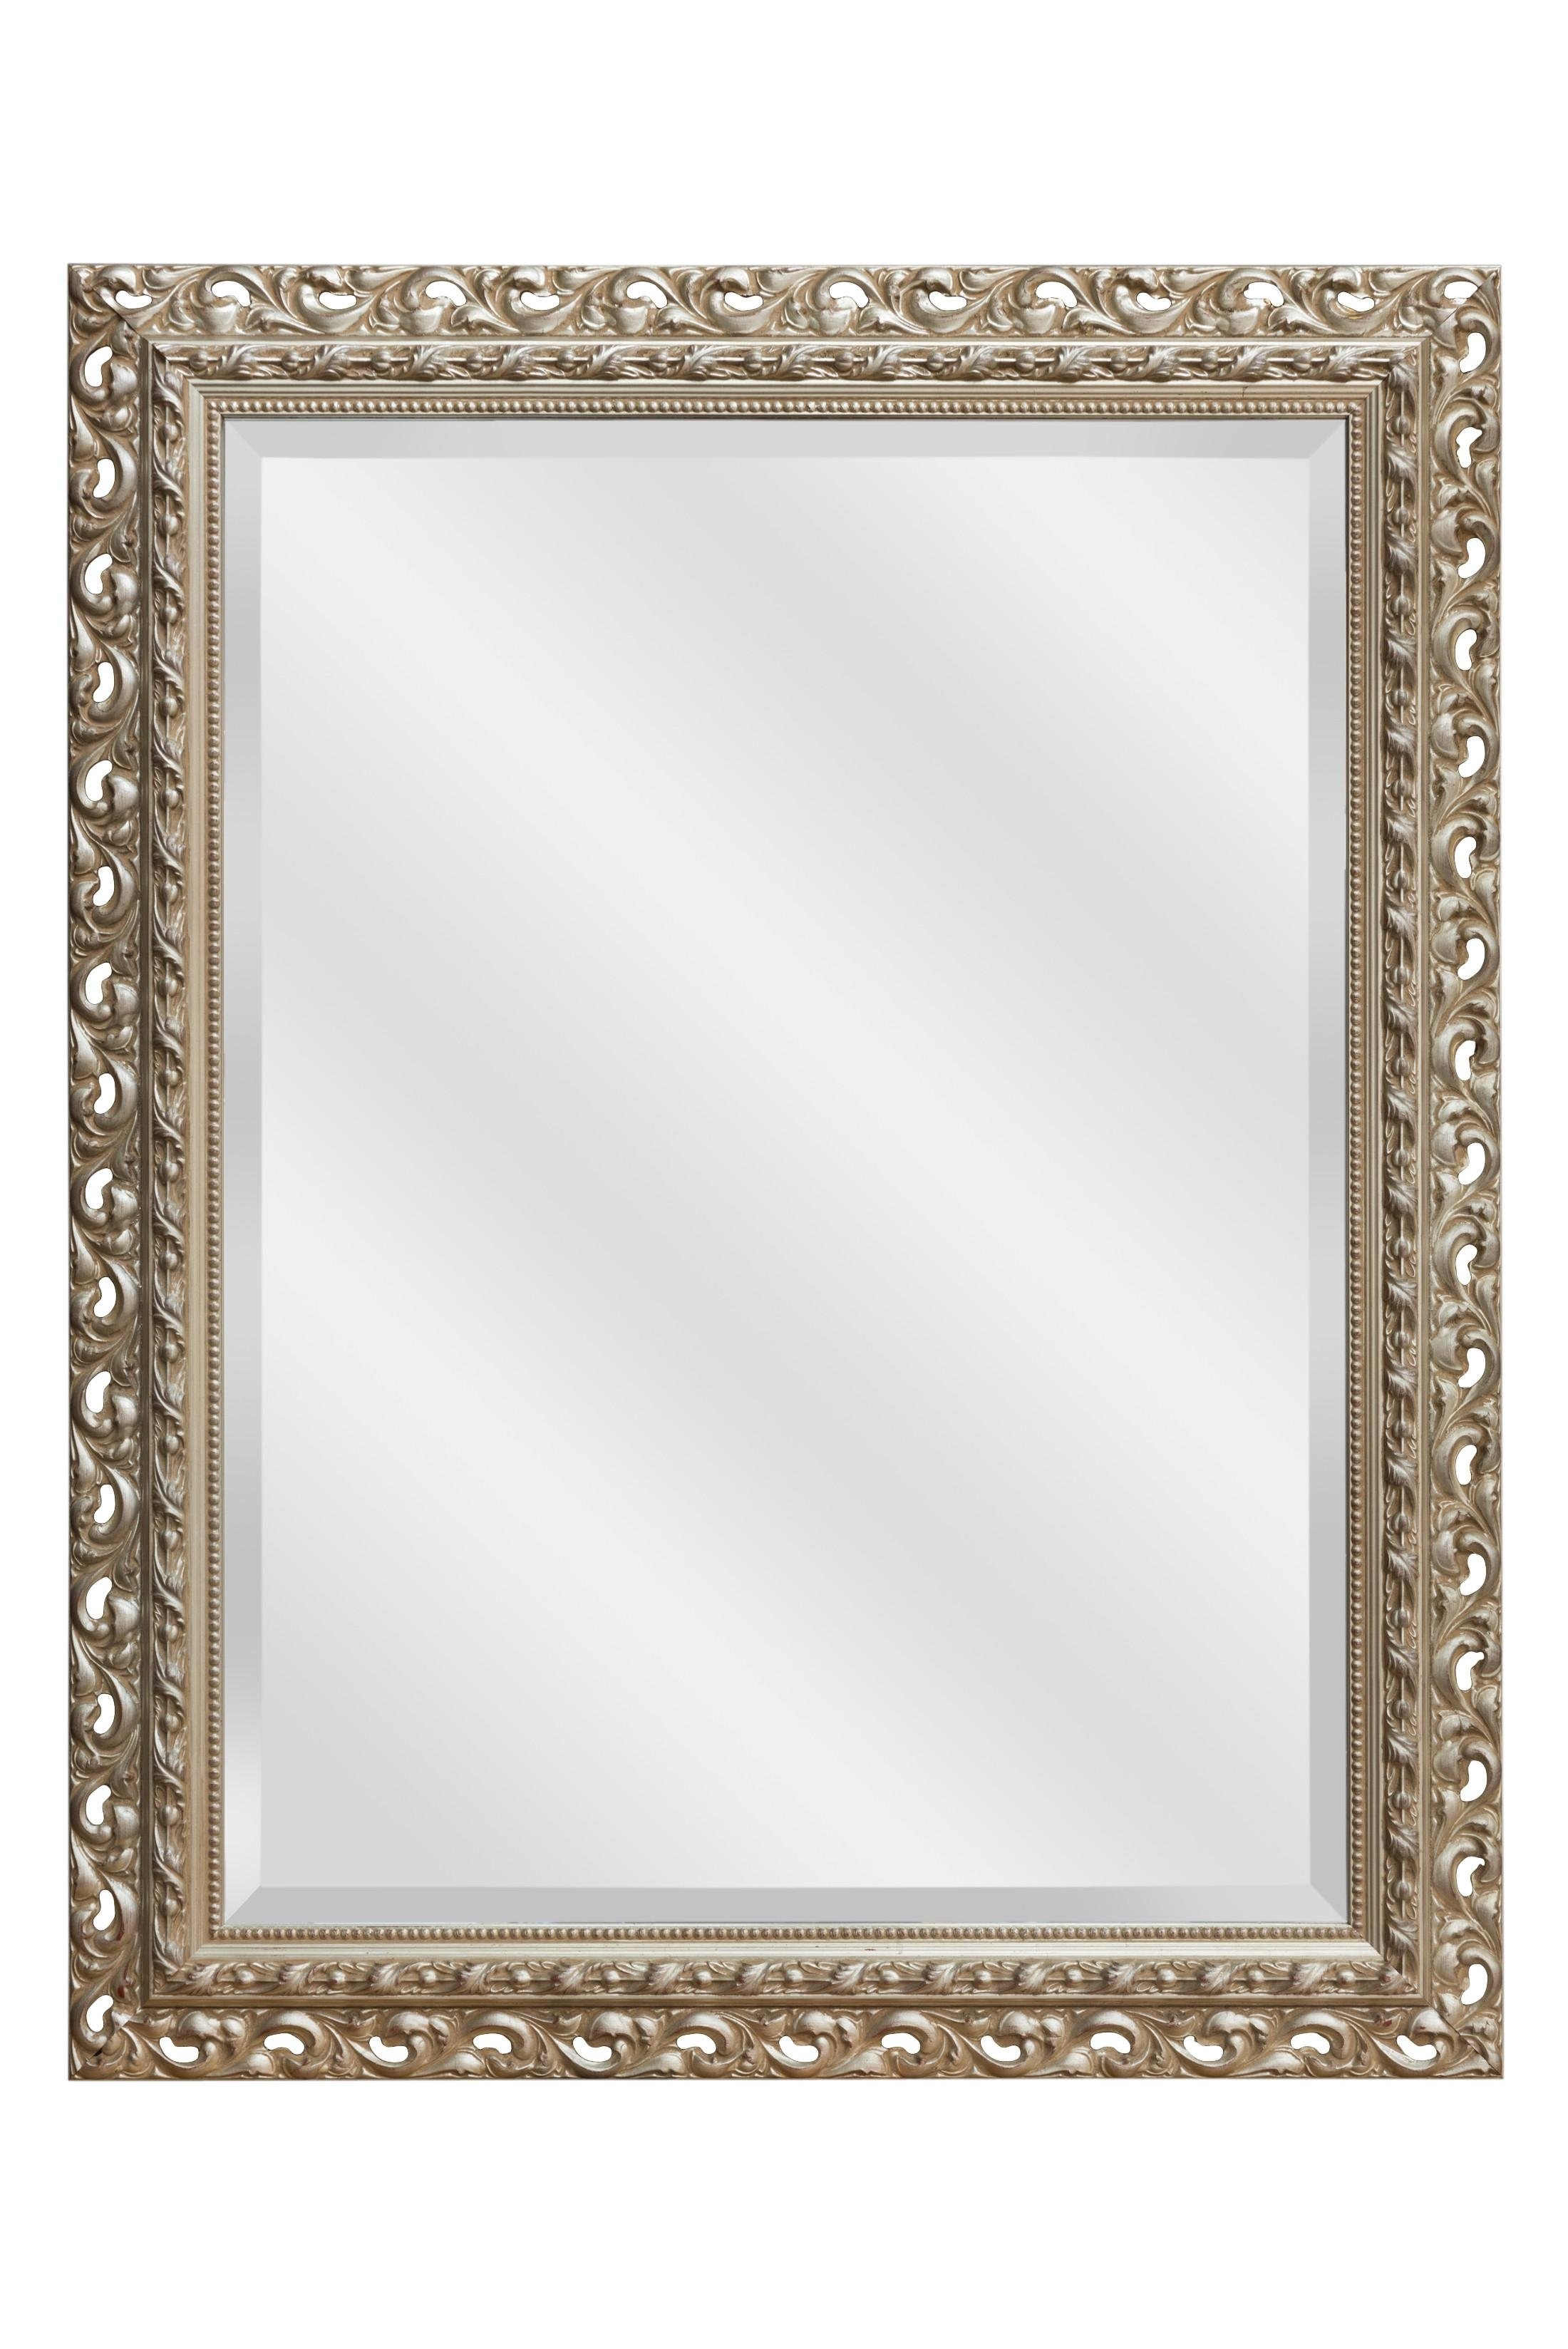 Silver Rococo Mirror | Silver Mirrors For Sale – Panfili Mirrors Pertaining To Roccoco Mirror (Image 19 of 20)